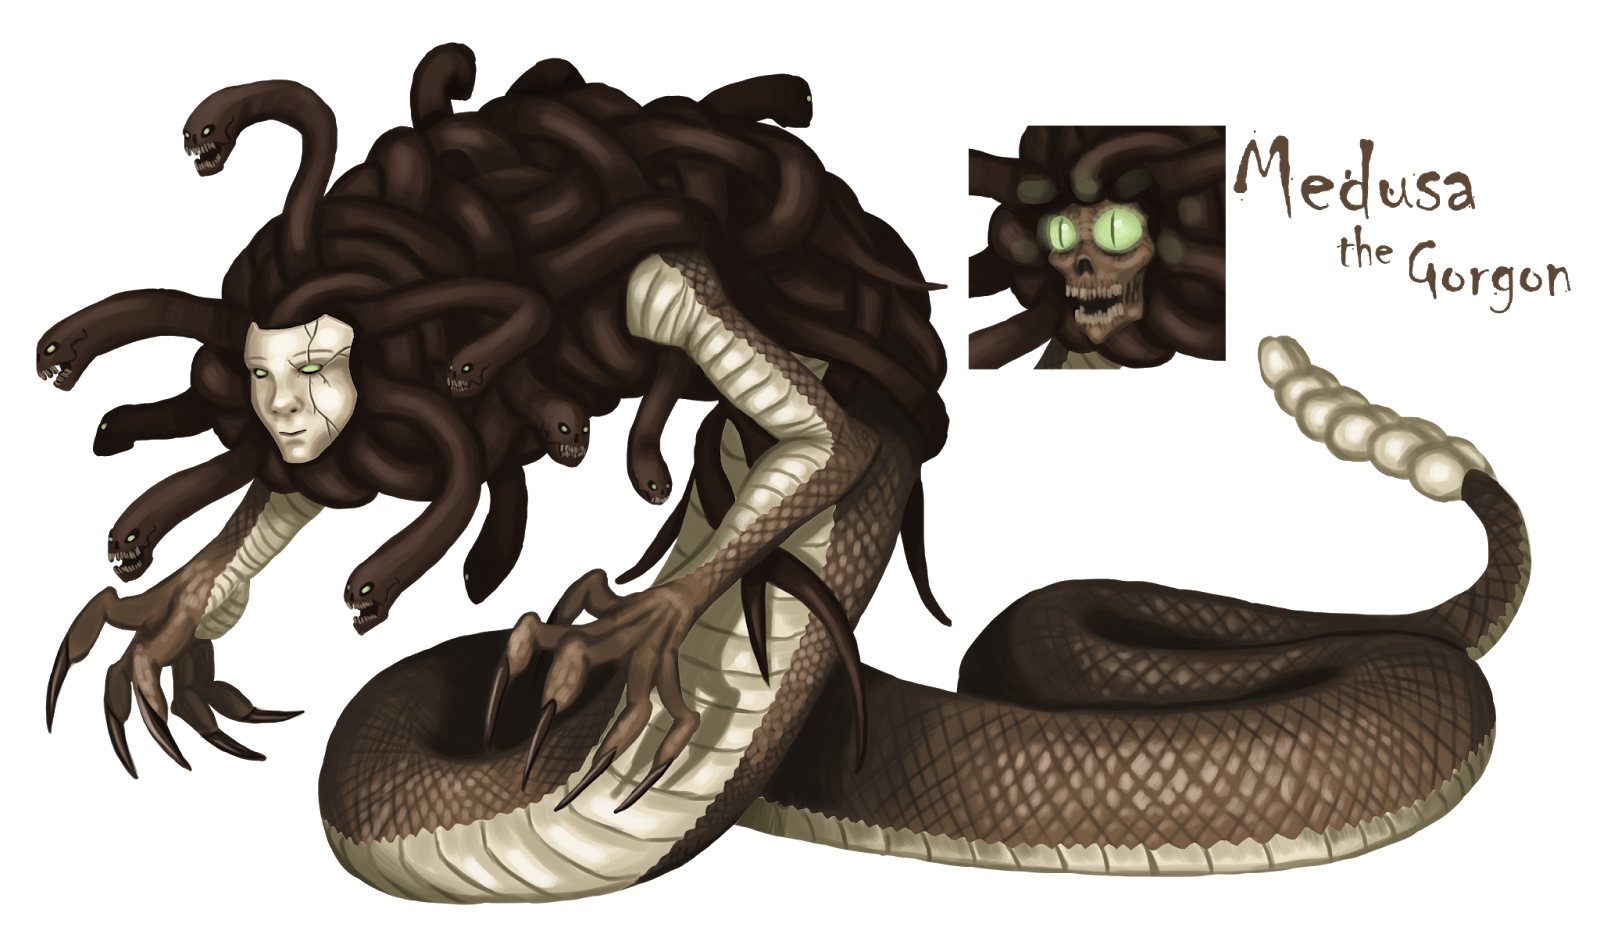 Gorgon drawing greek monster. What do you guys